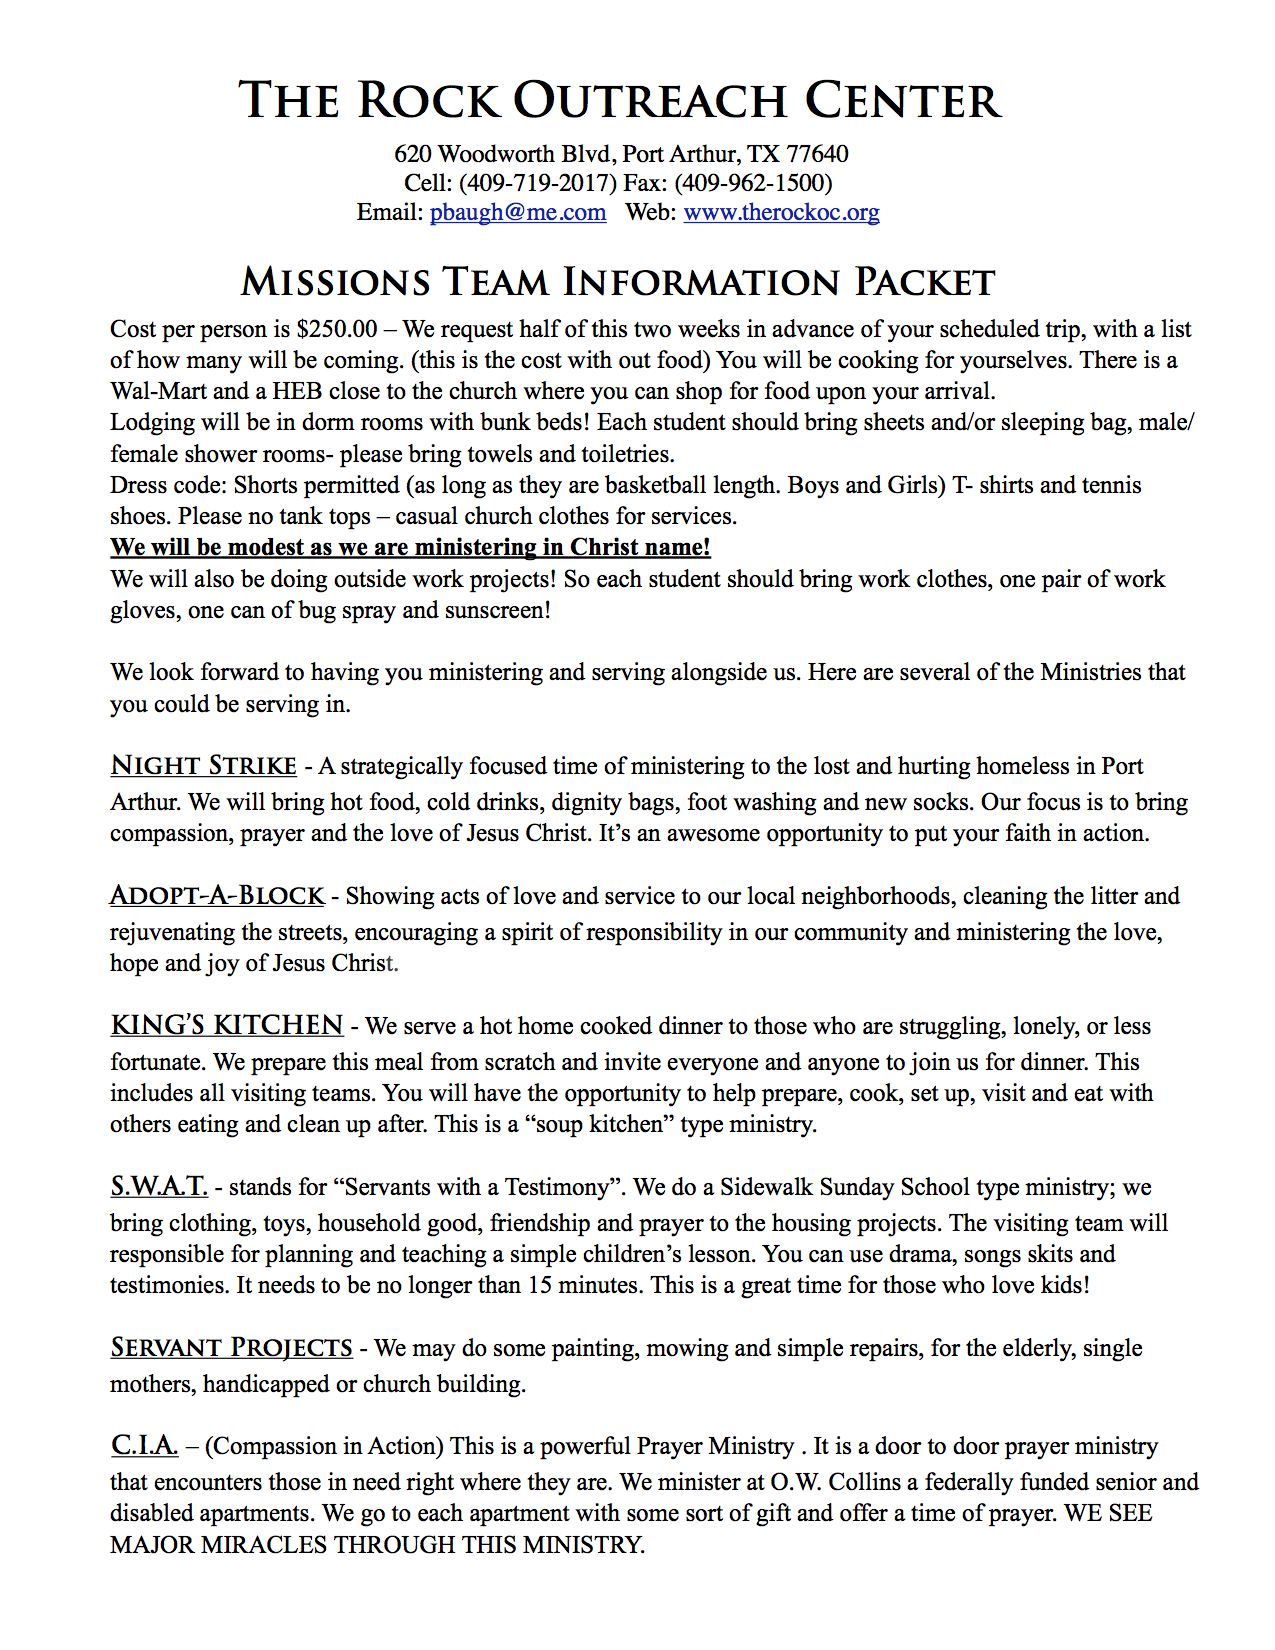 Missions Team Information Packet 3